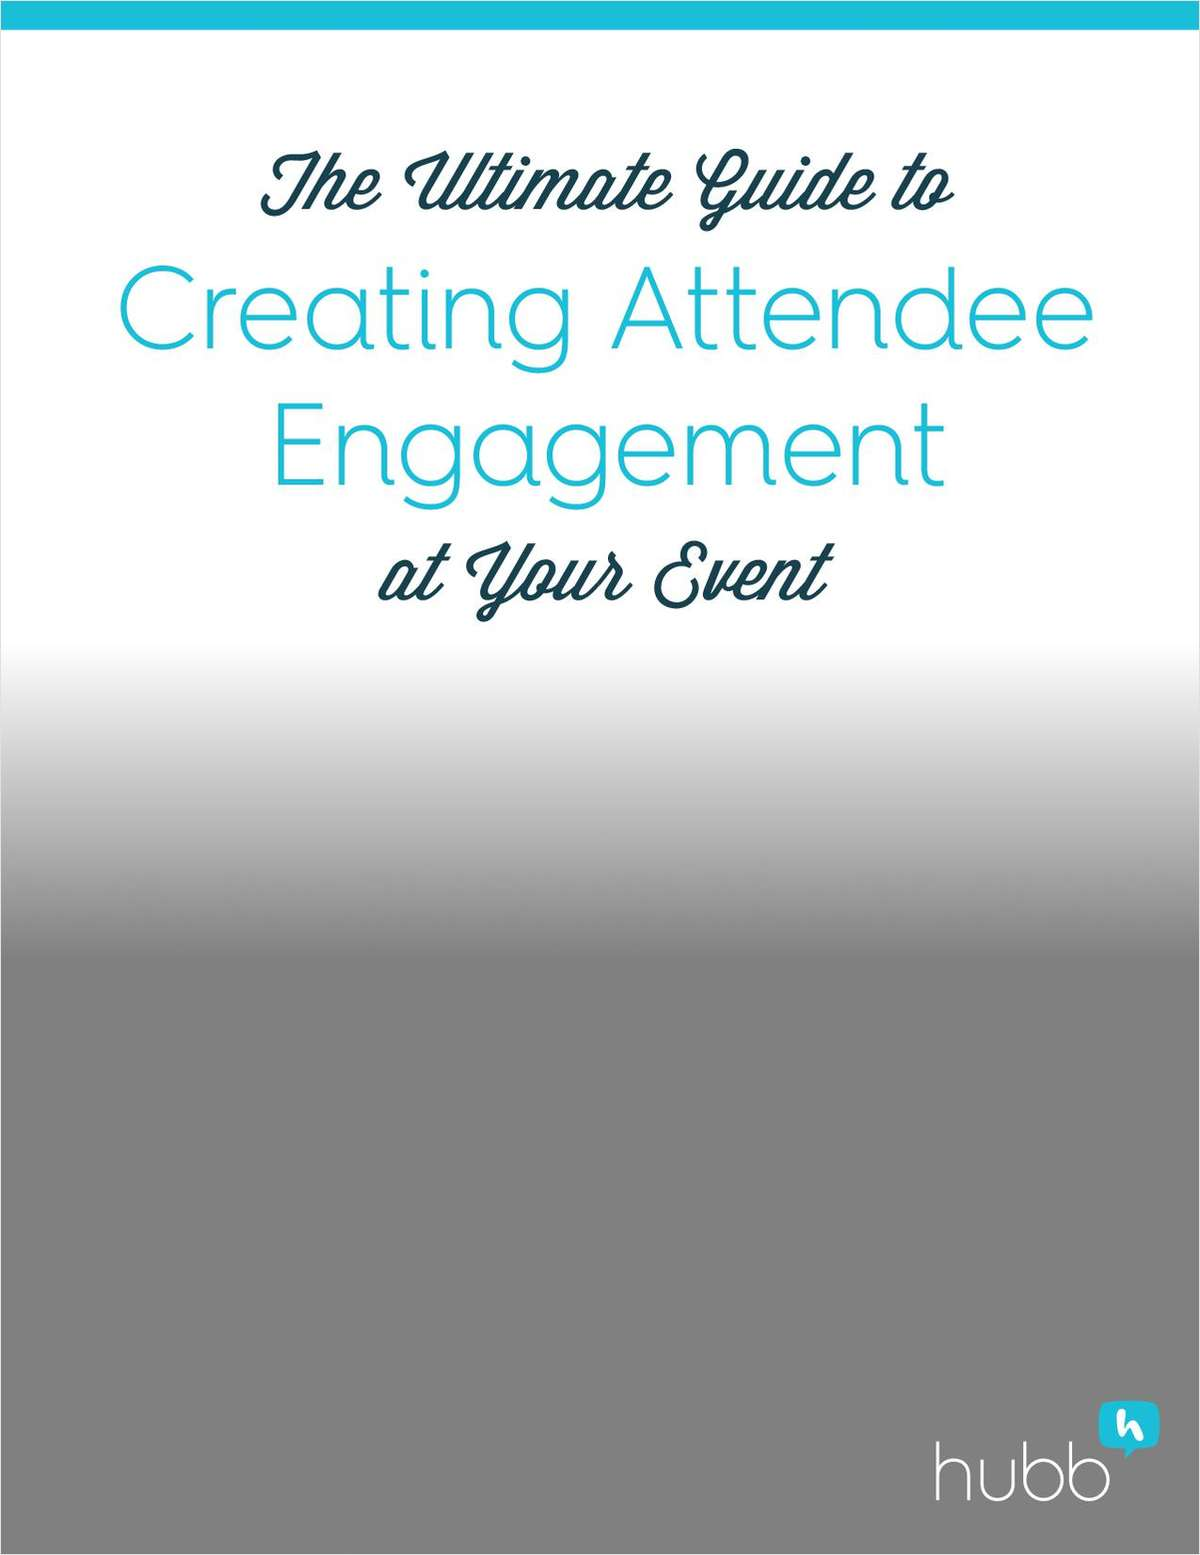 The Ultimate Guide to Creating Attendee Engagement